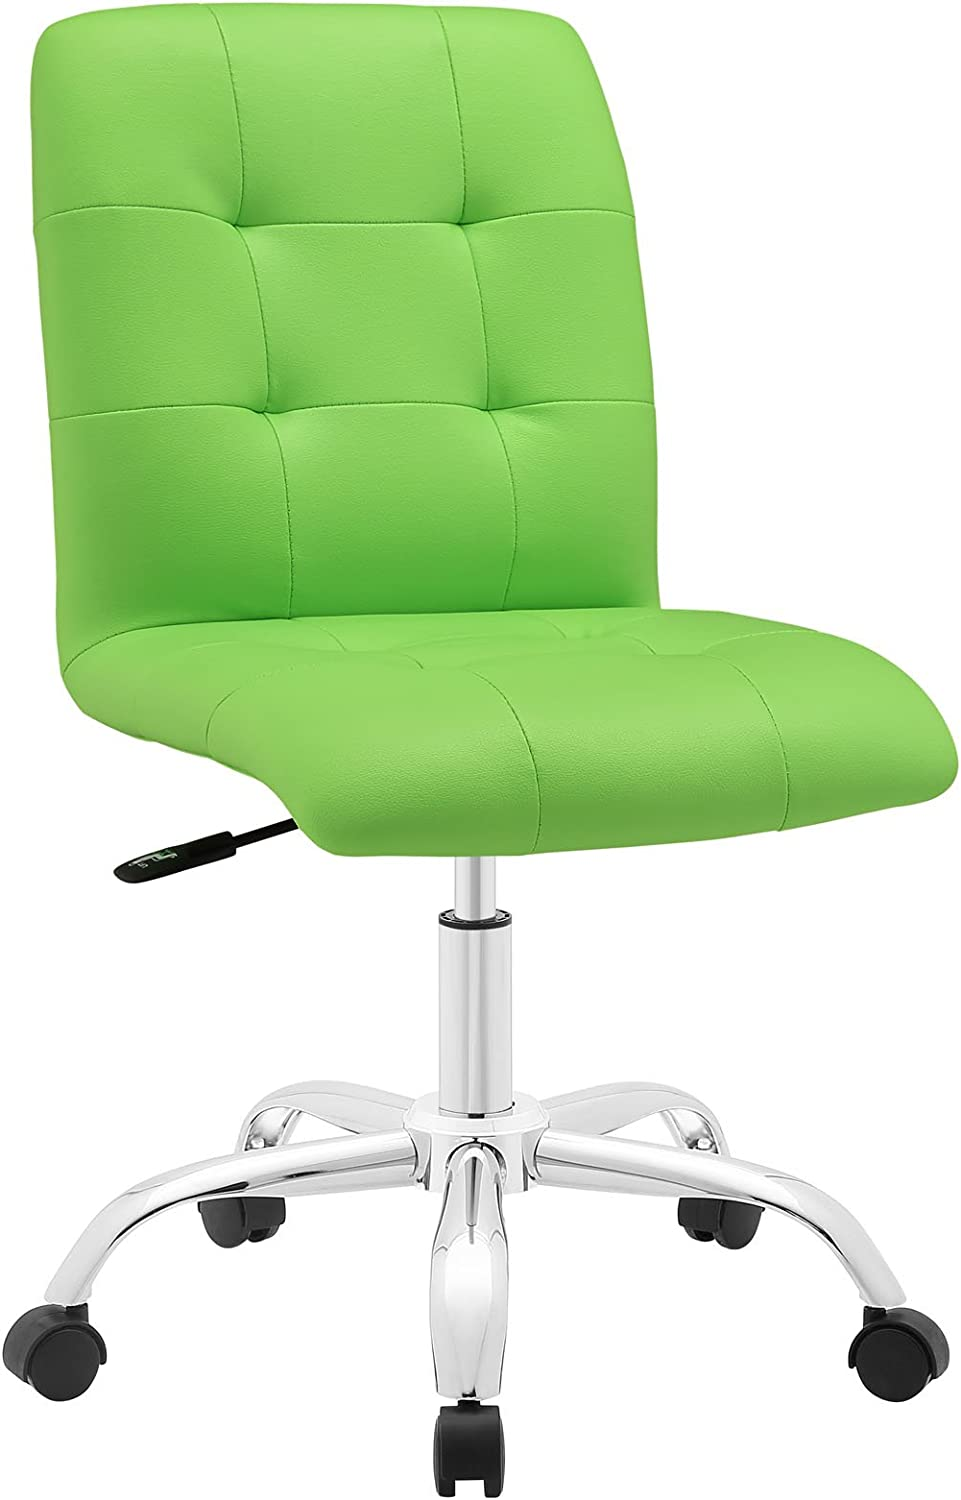 Modway Prim Ribbed Armless Mid Back Swivel Conference Office Chair In Bright Green